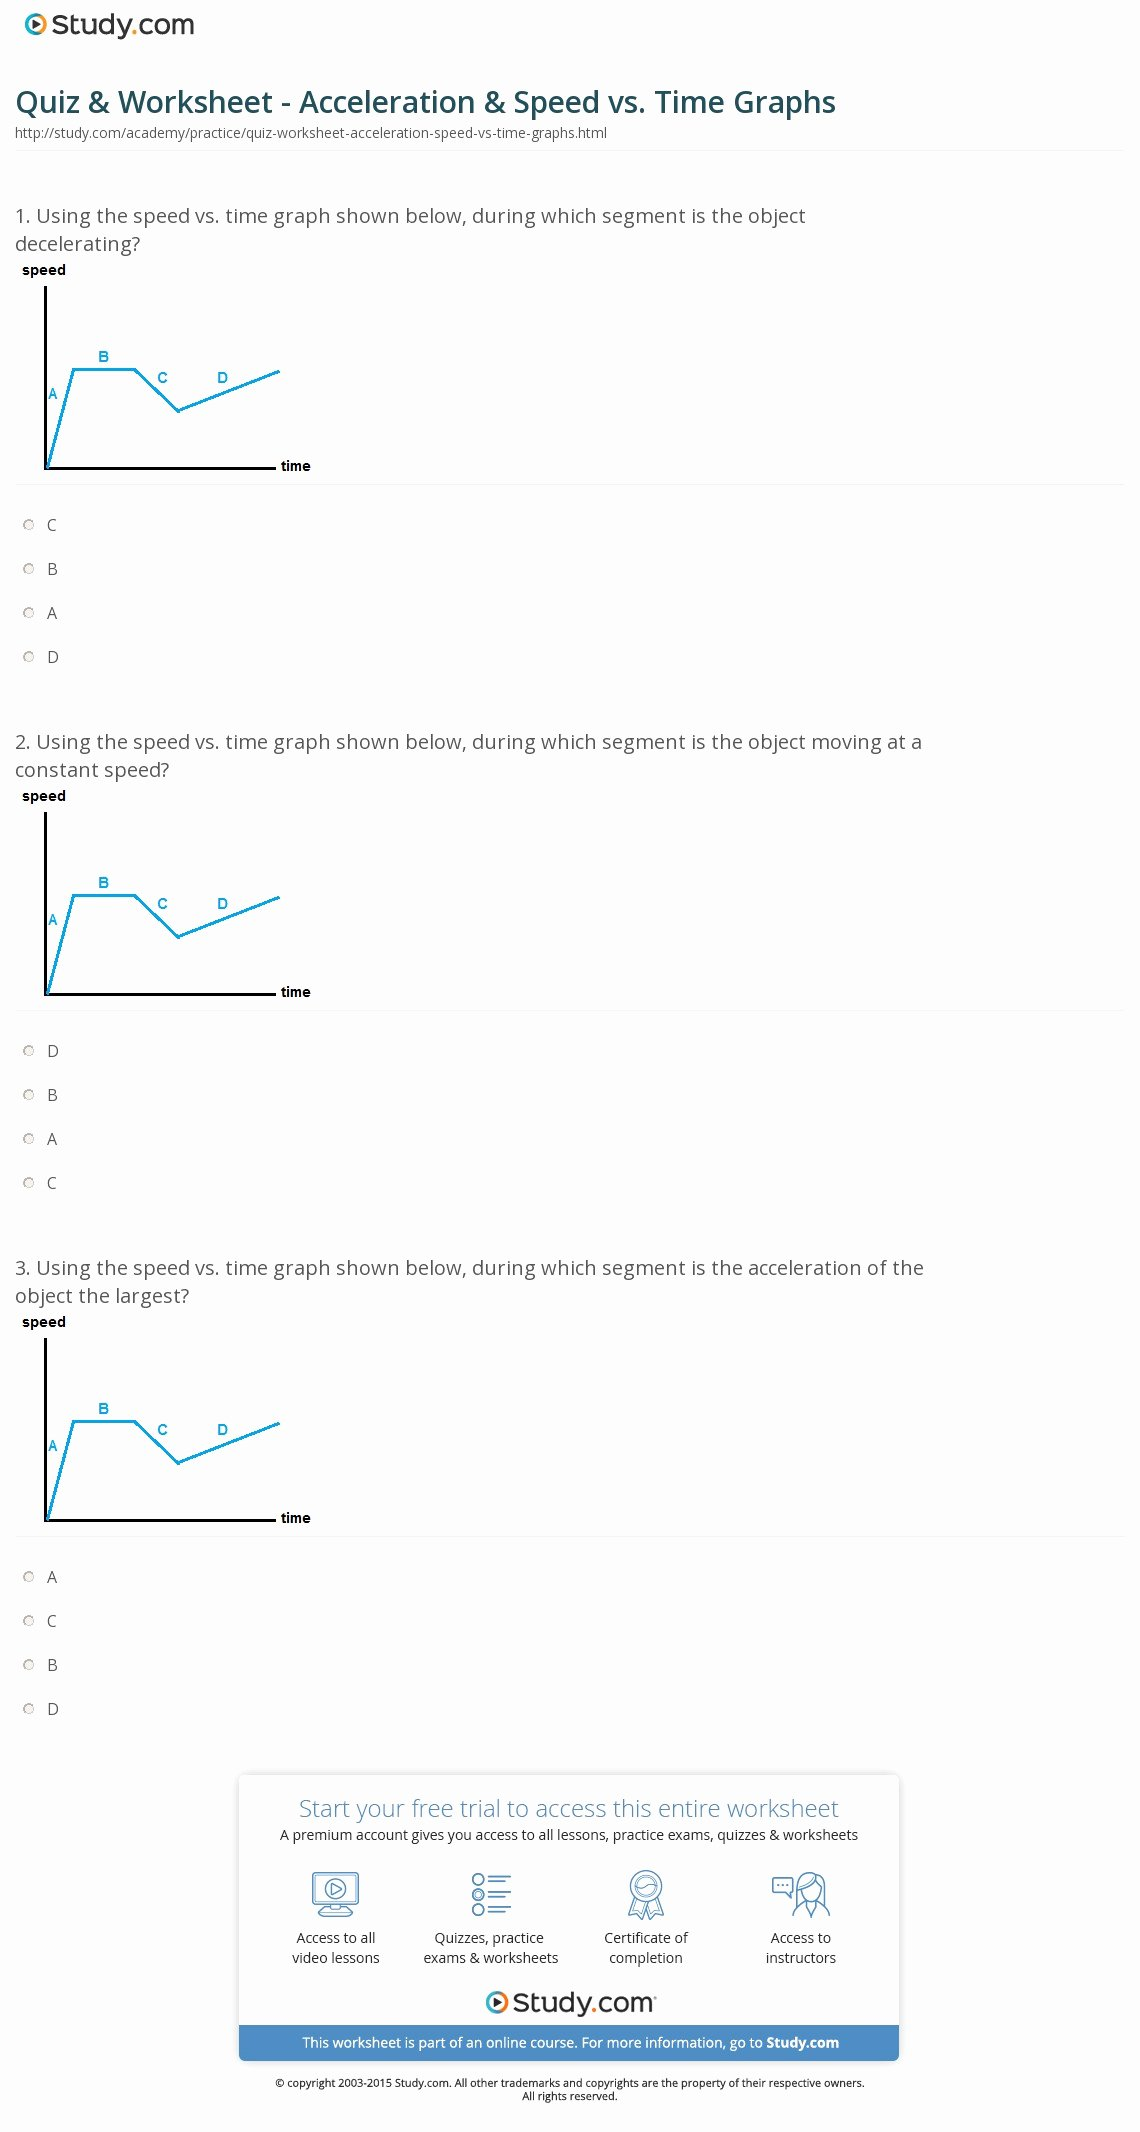 Speed Vs Time Graph Worksheet Fresh Quiz & Worksheet Acceleration & Speed Vs Time Graphs